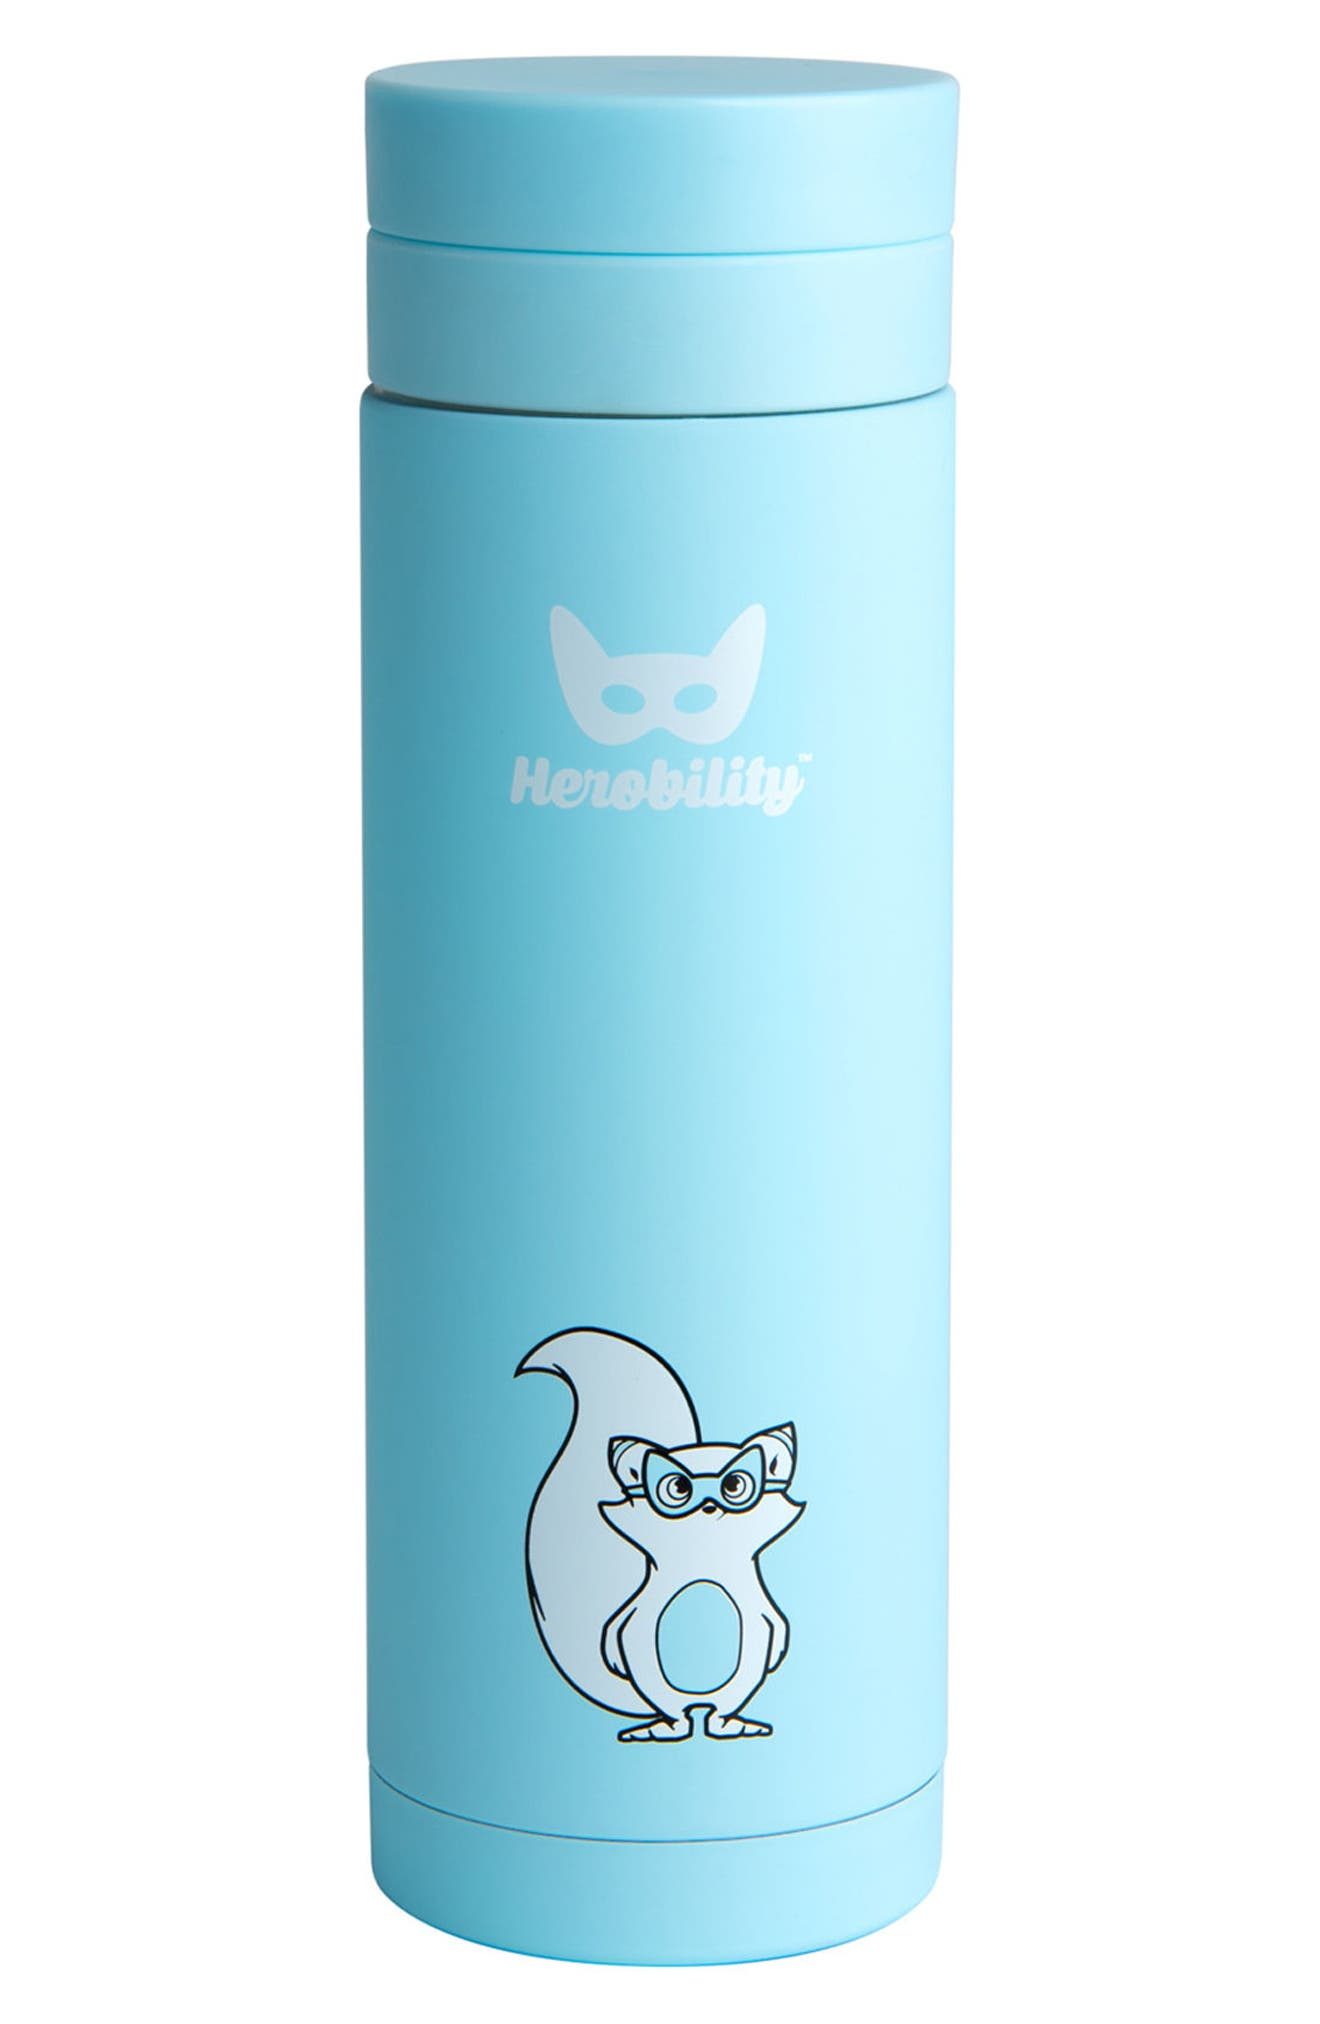 10-Ounce HeroTermos Stainless Steel Thermos,                             Main thumbnail 1, color,                             Blue